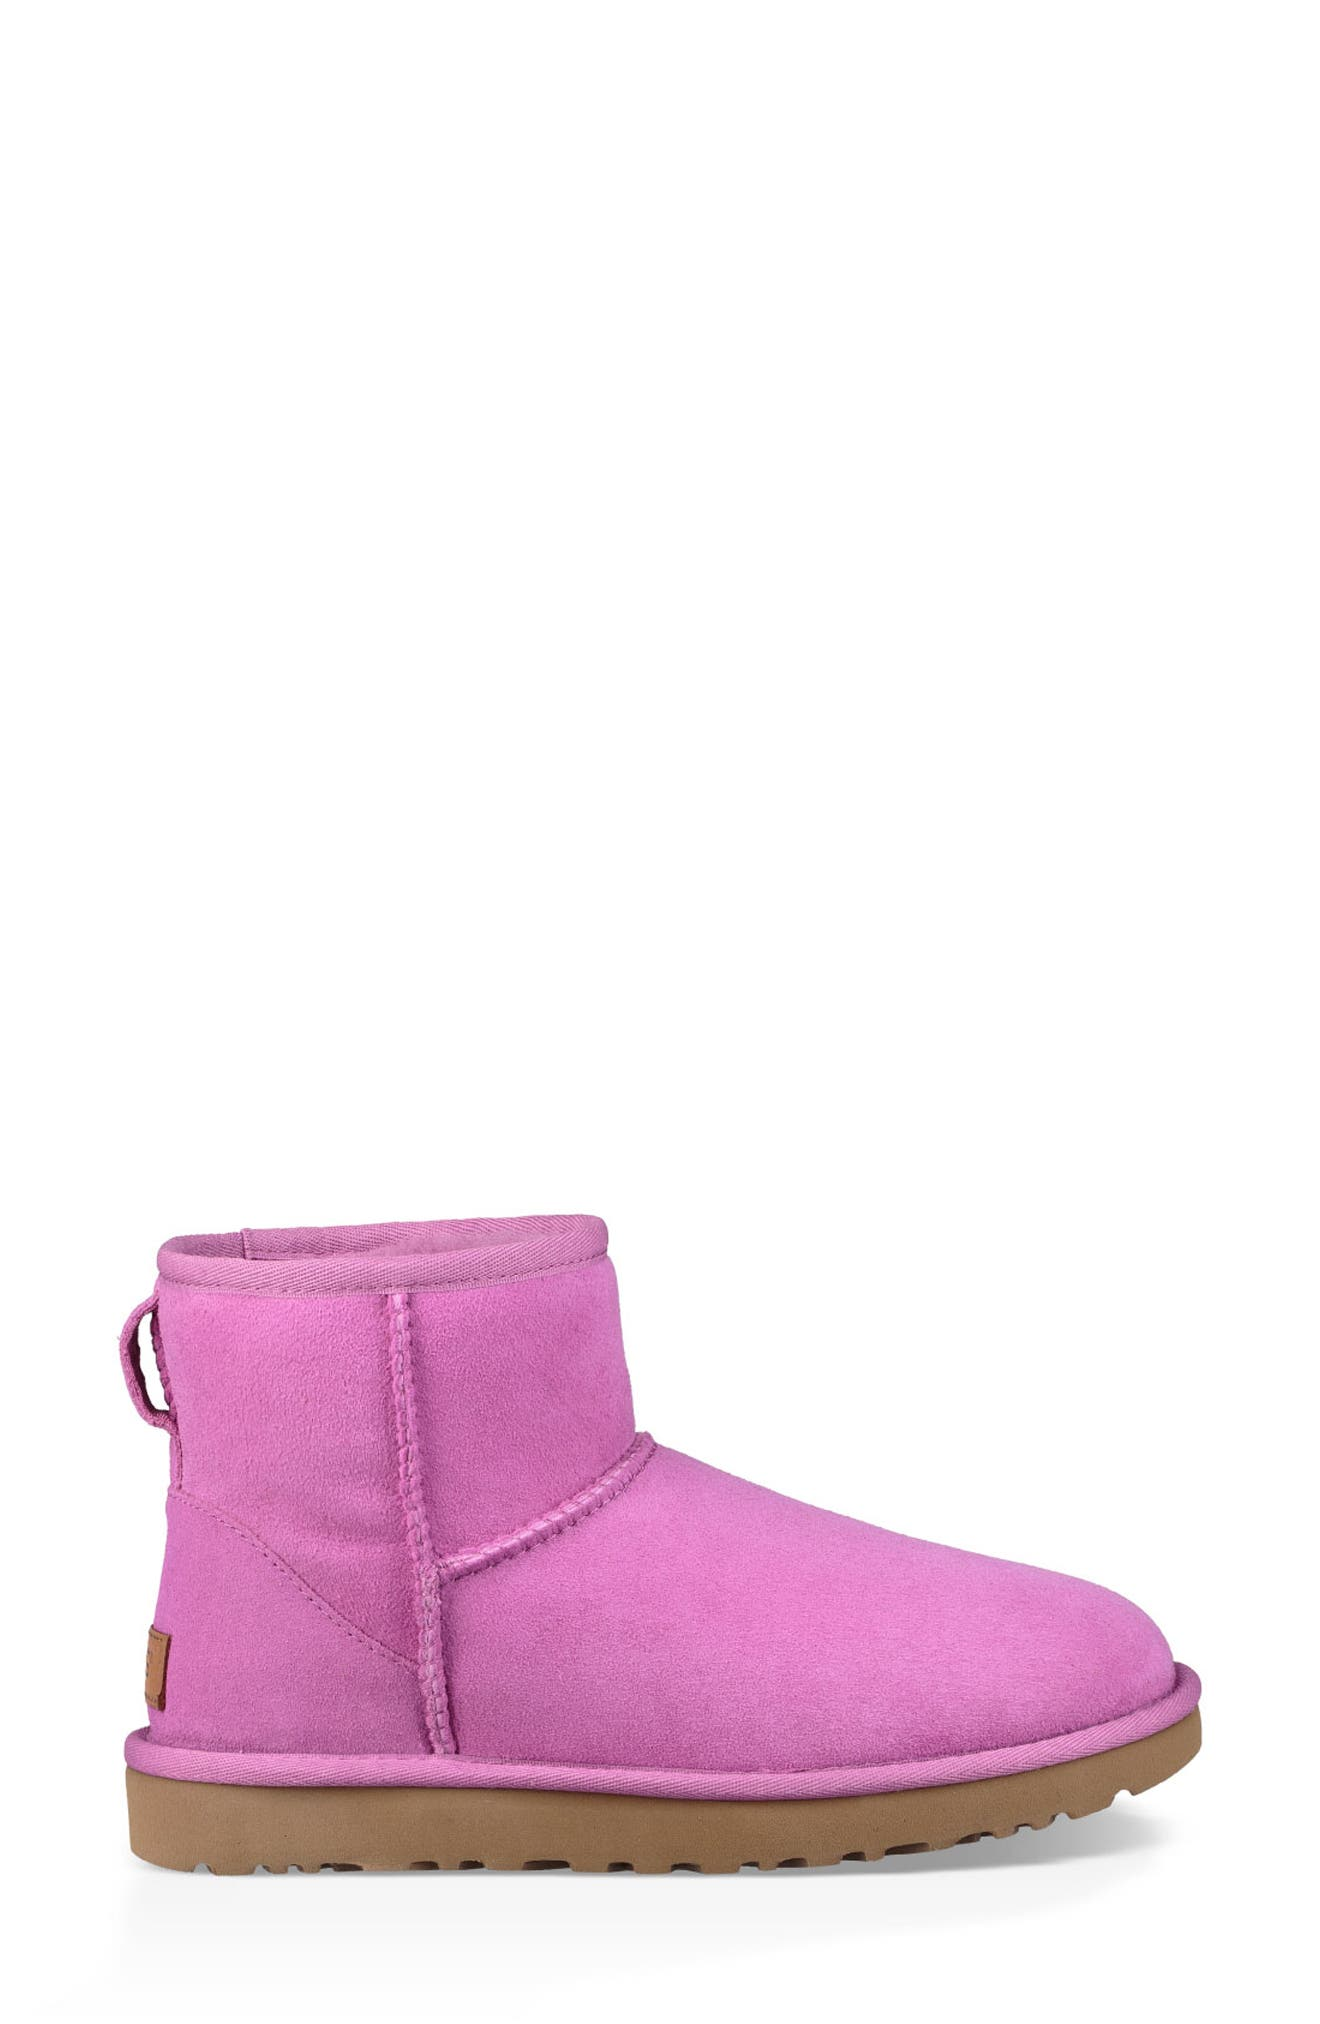 'Classic Mini II' Genuine Shearling Lined Boot,                             Alternate thumbnail 3, color,                             BODACIOUS SUEDE